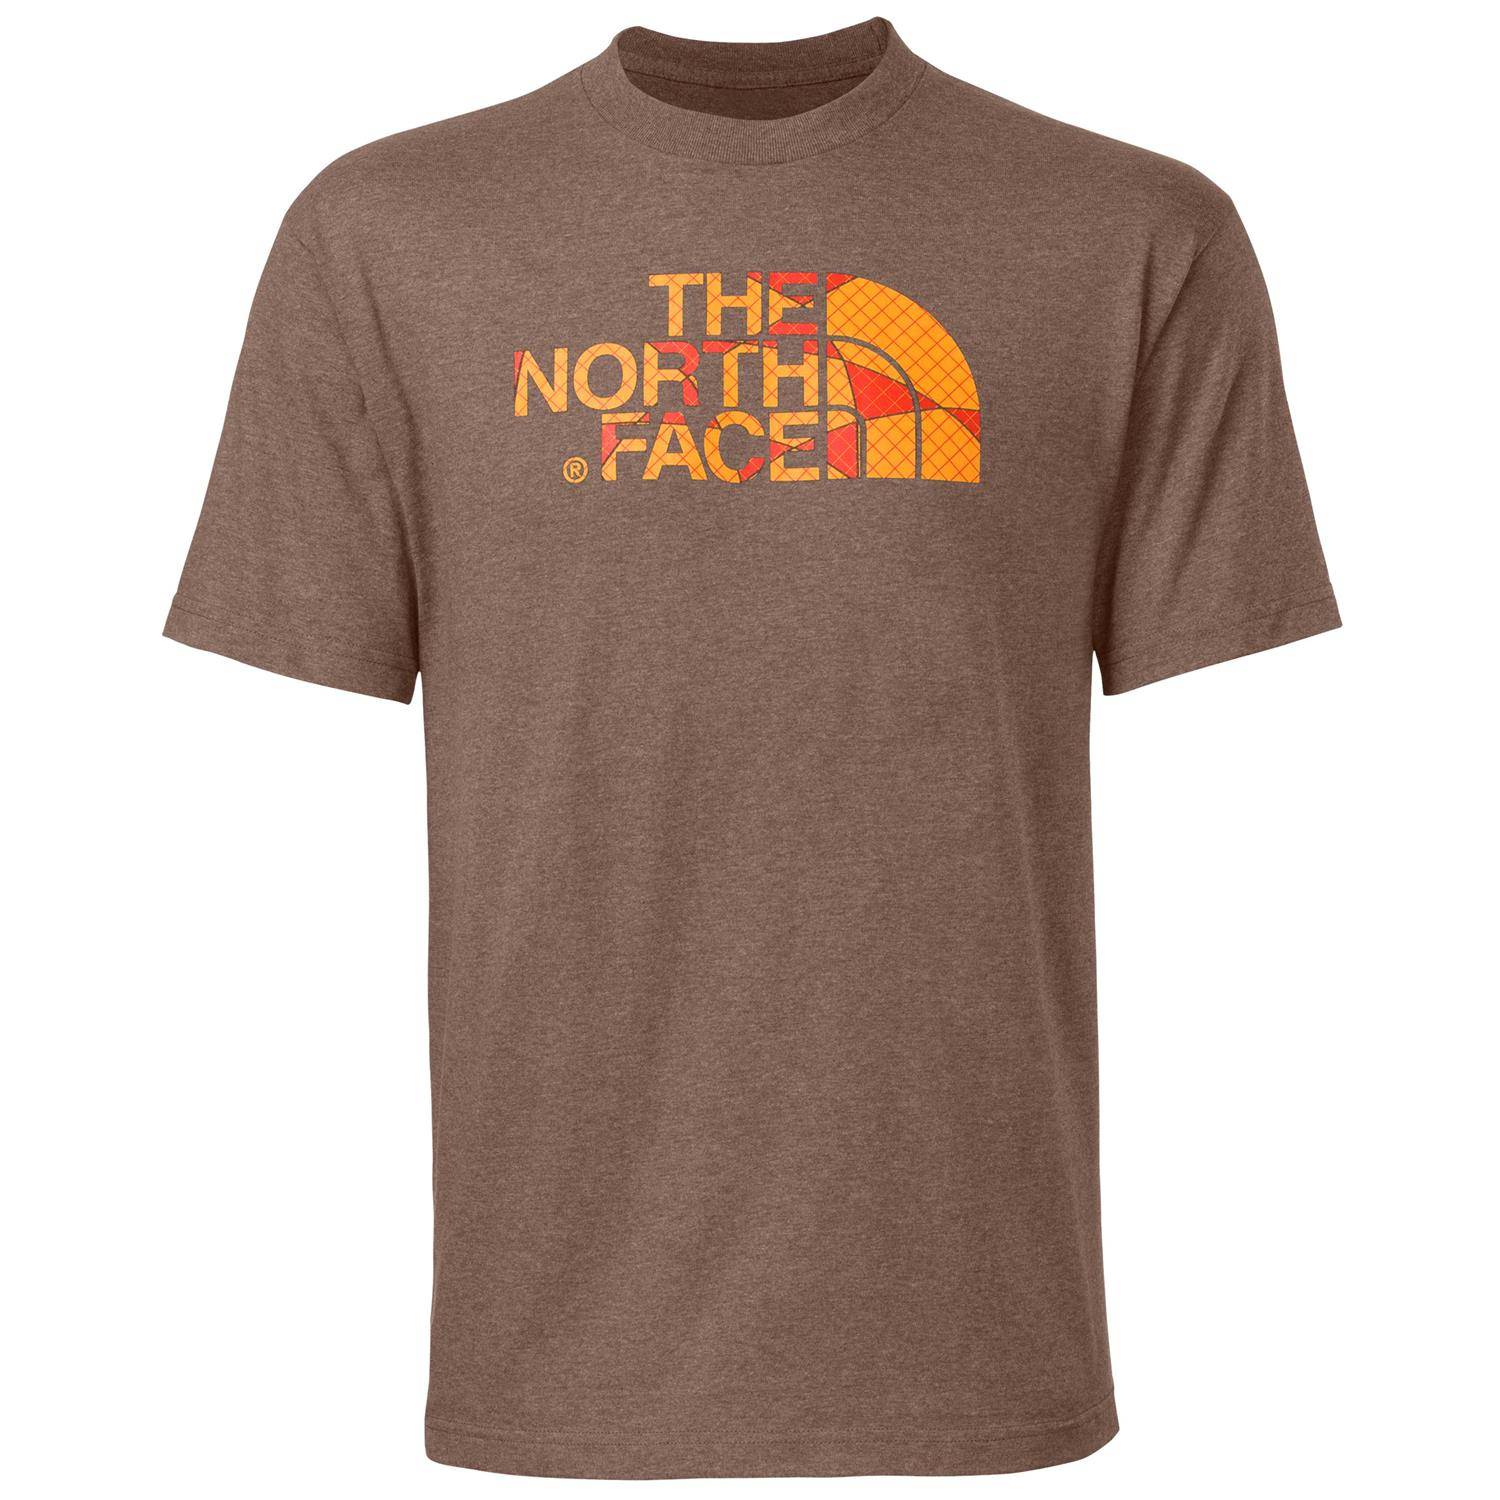 The North Face Dekadome T Shirt Evo Outlet